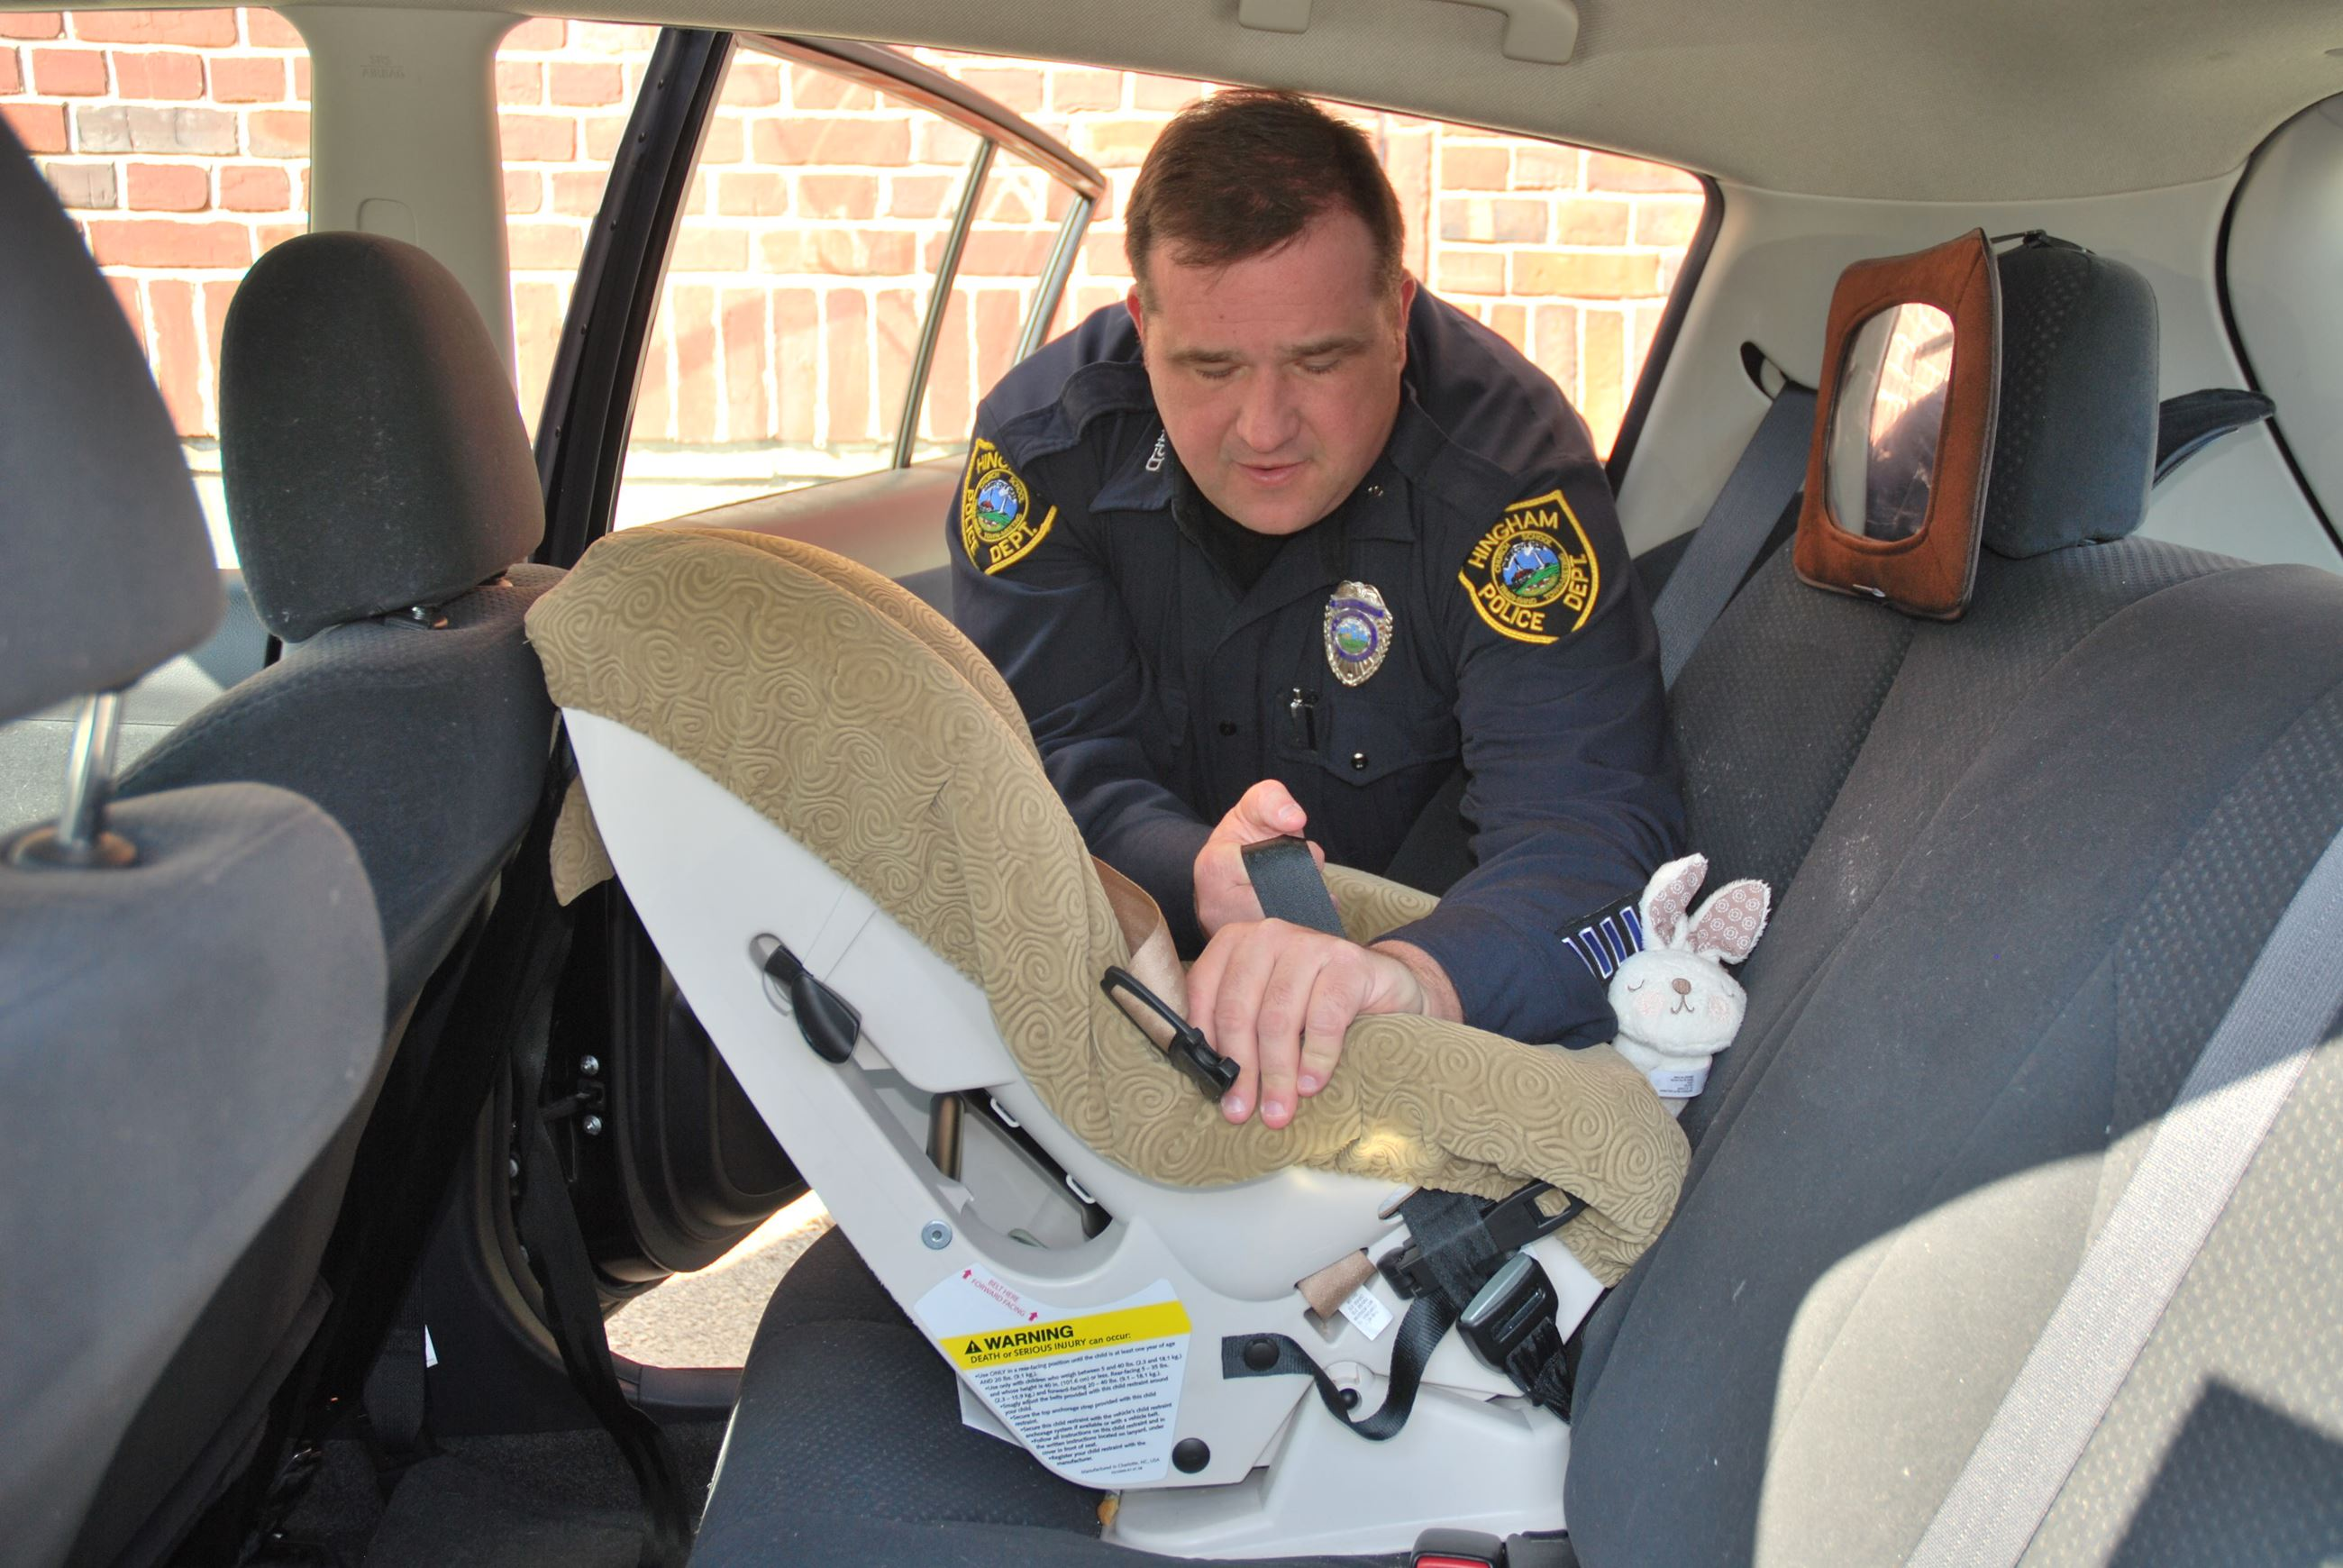 Child Car Seat Installation | Hingham Police Departt, MA